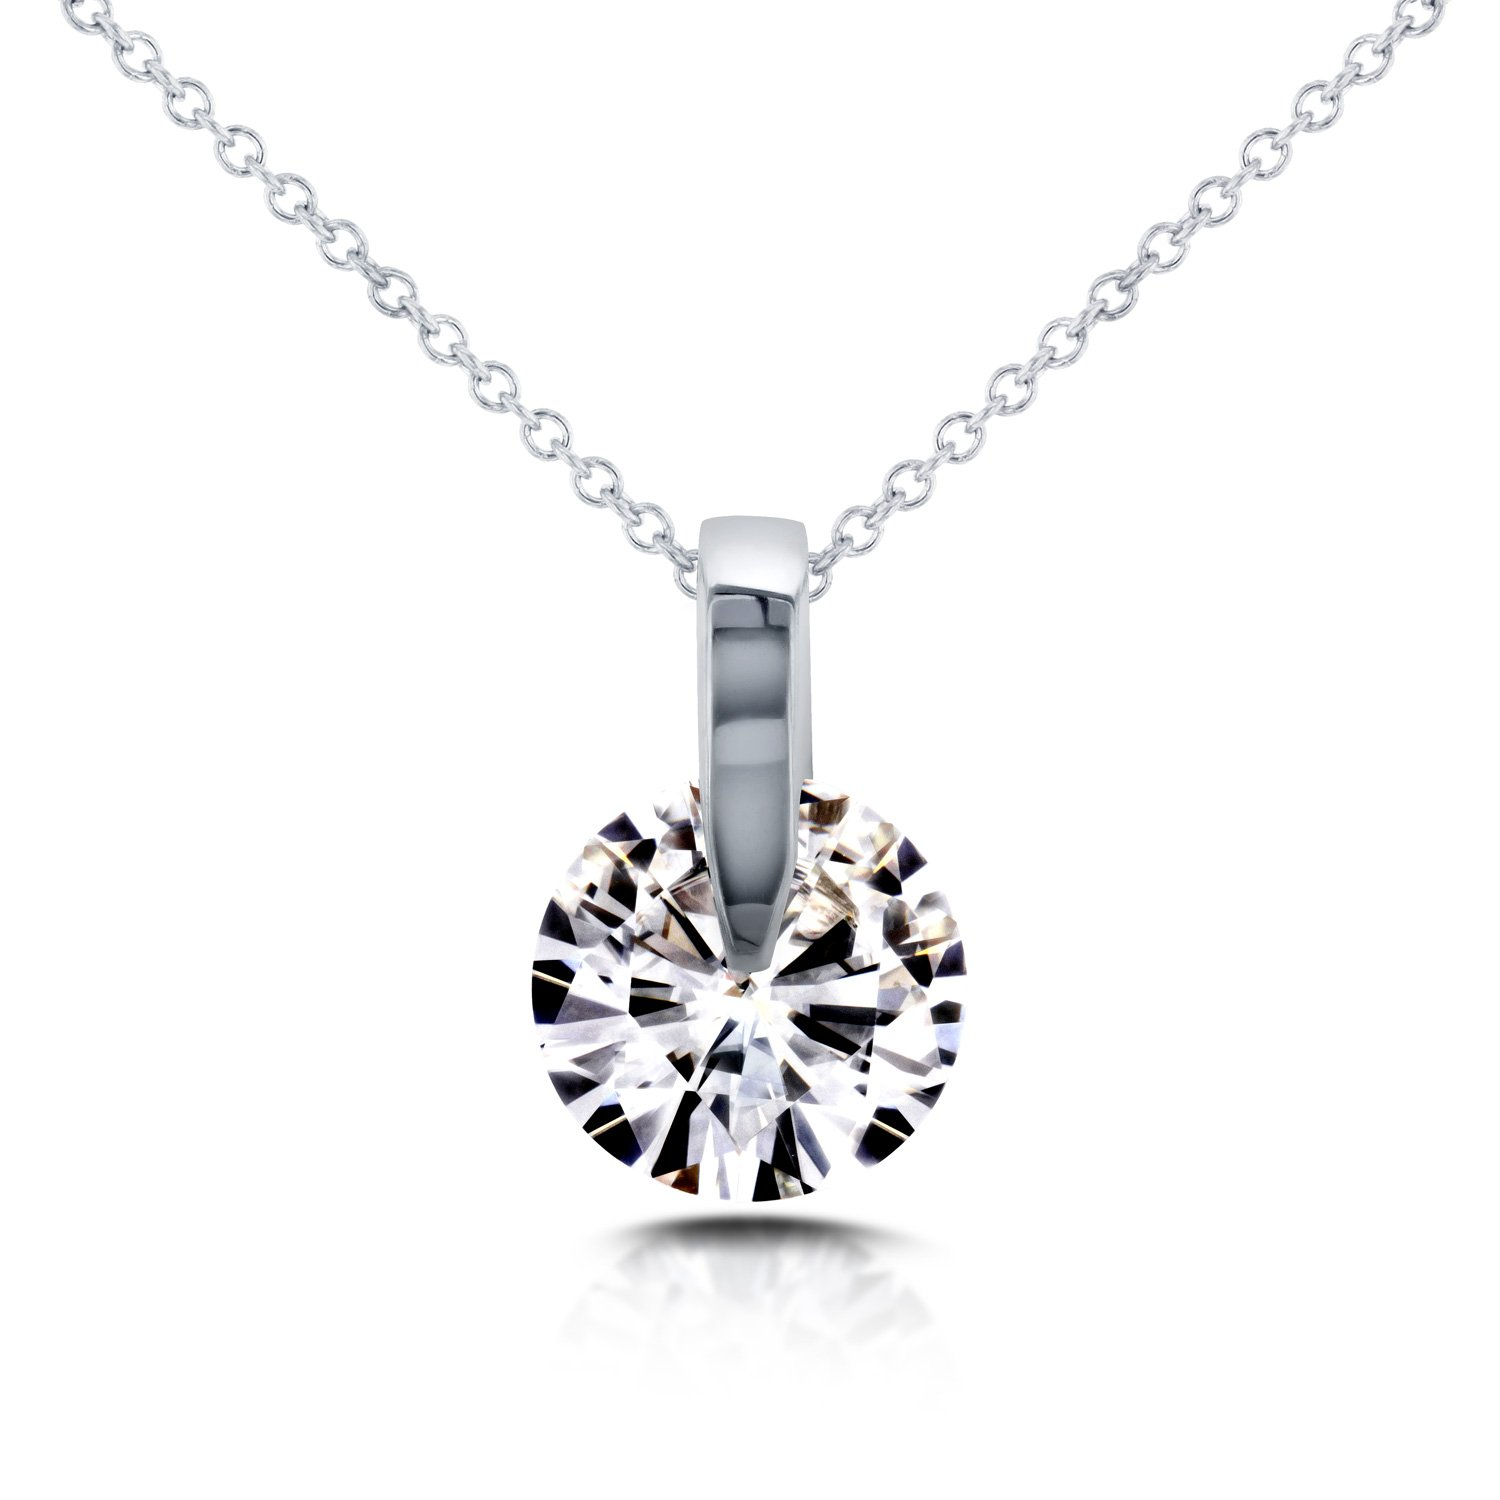 Near-Colorless (F-G) Moissanite Wheel Solitaire Necklace 1 7/8 CTW in 14k White Gold